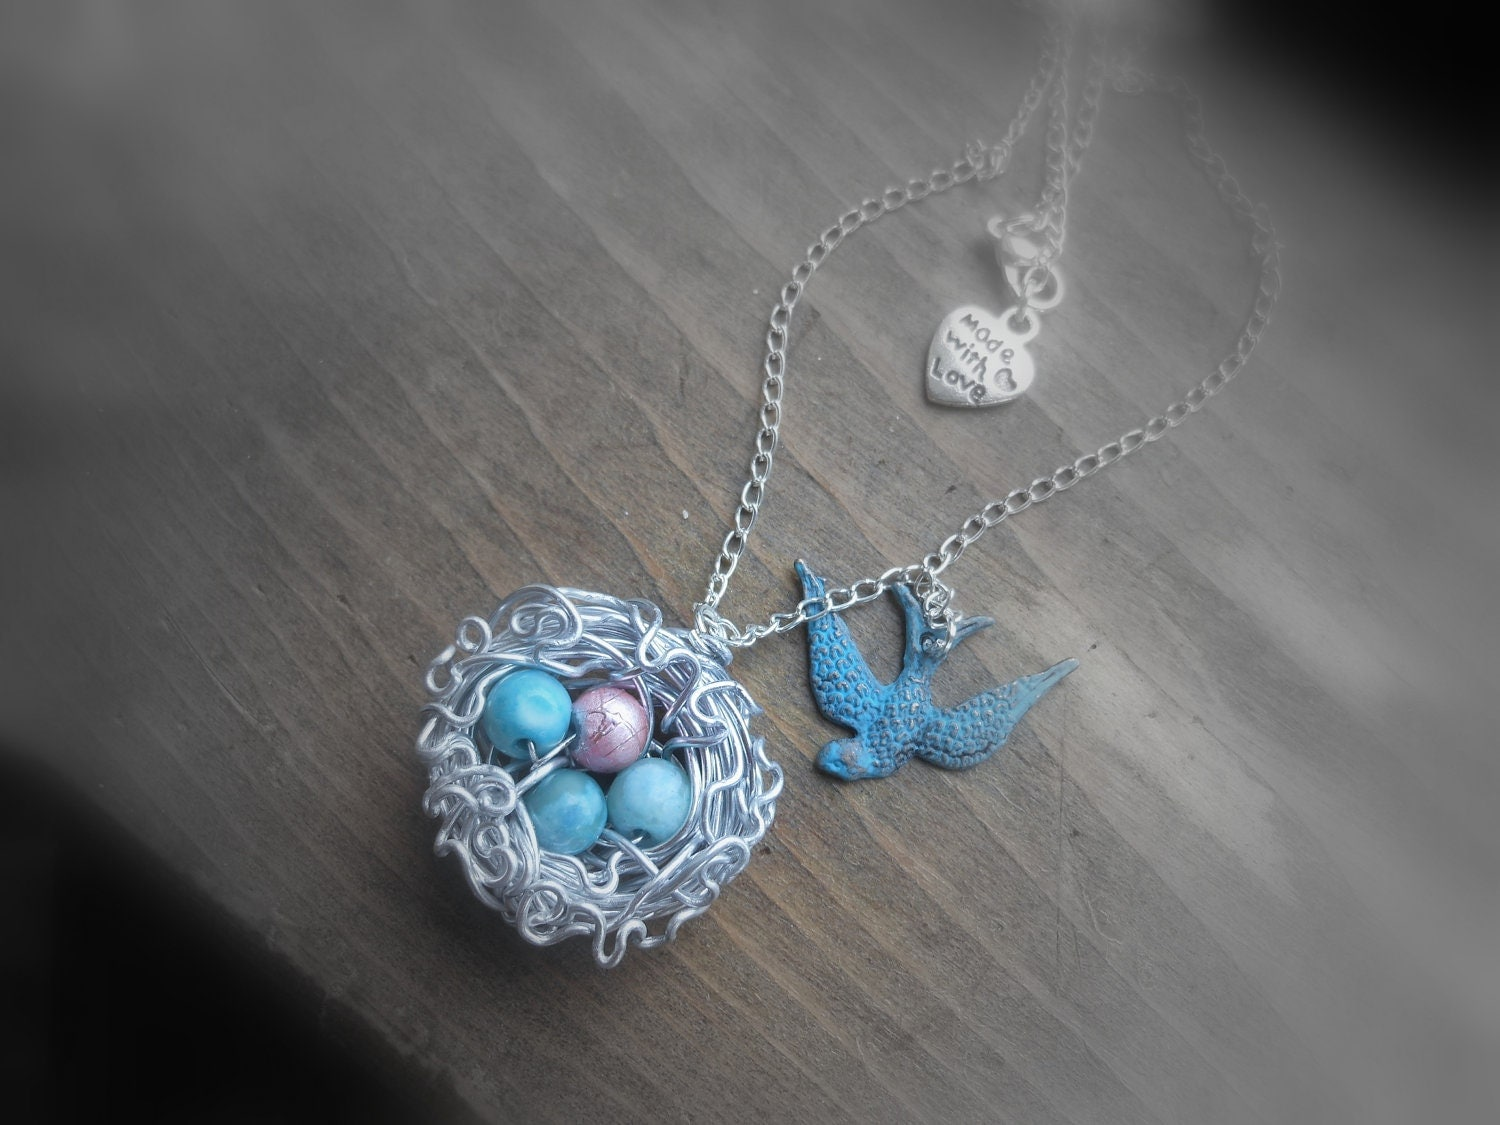 Blue Bird, Momma bird necklace, Fully customizable, including birthstone eggs